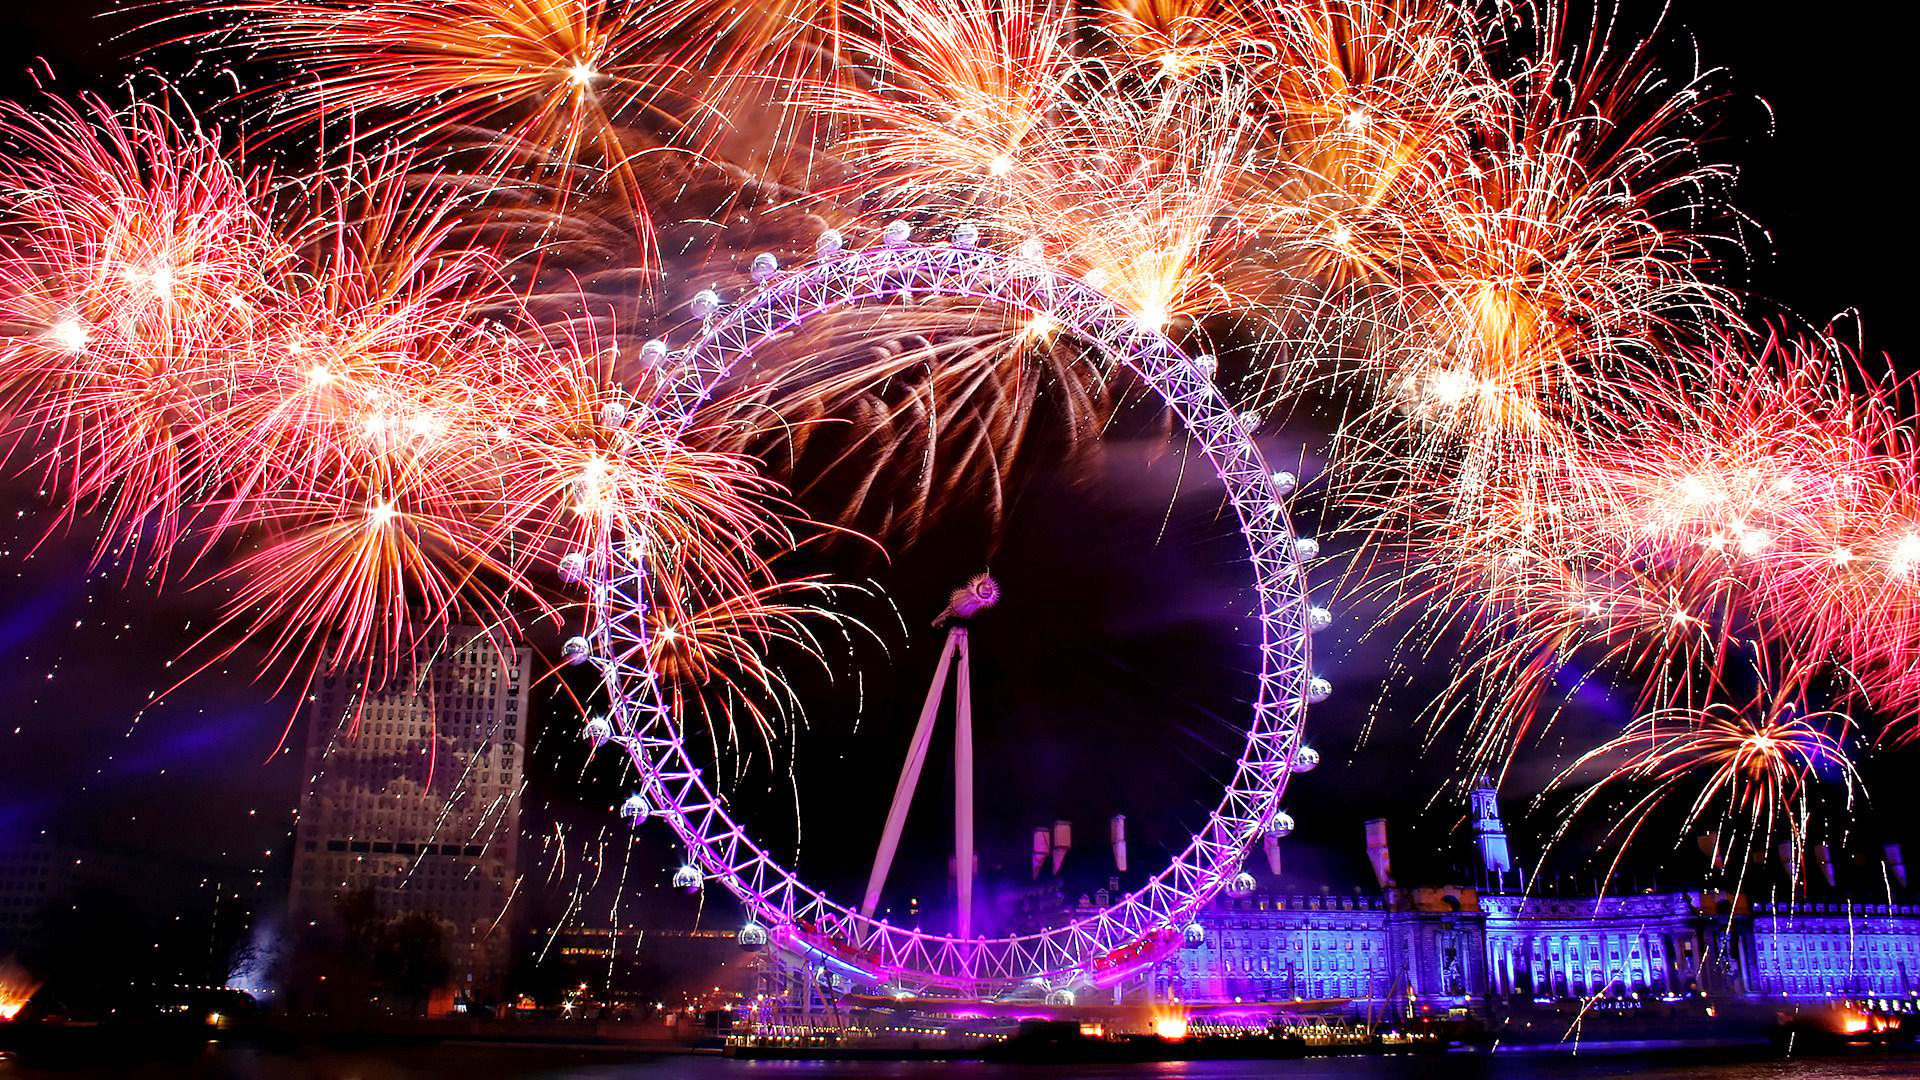 London's spectacular New Year fireworks